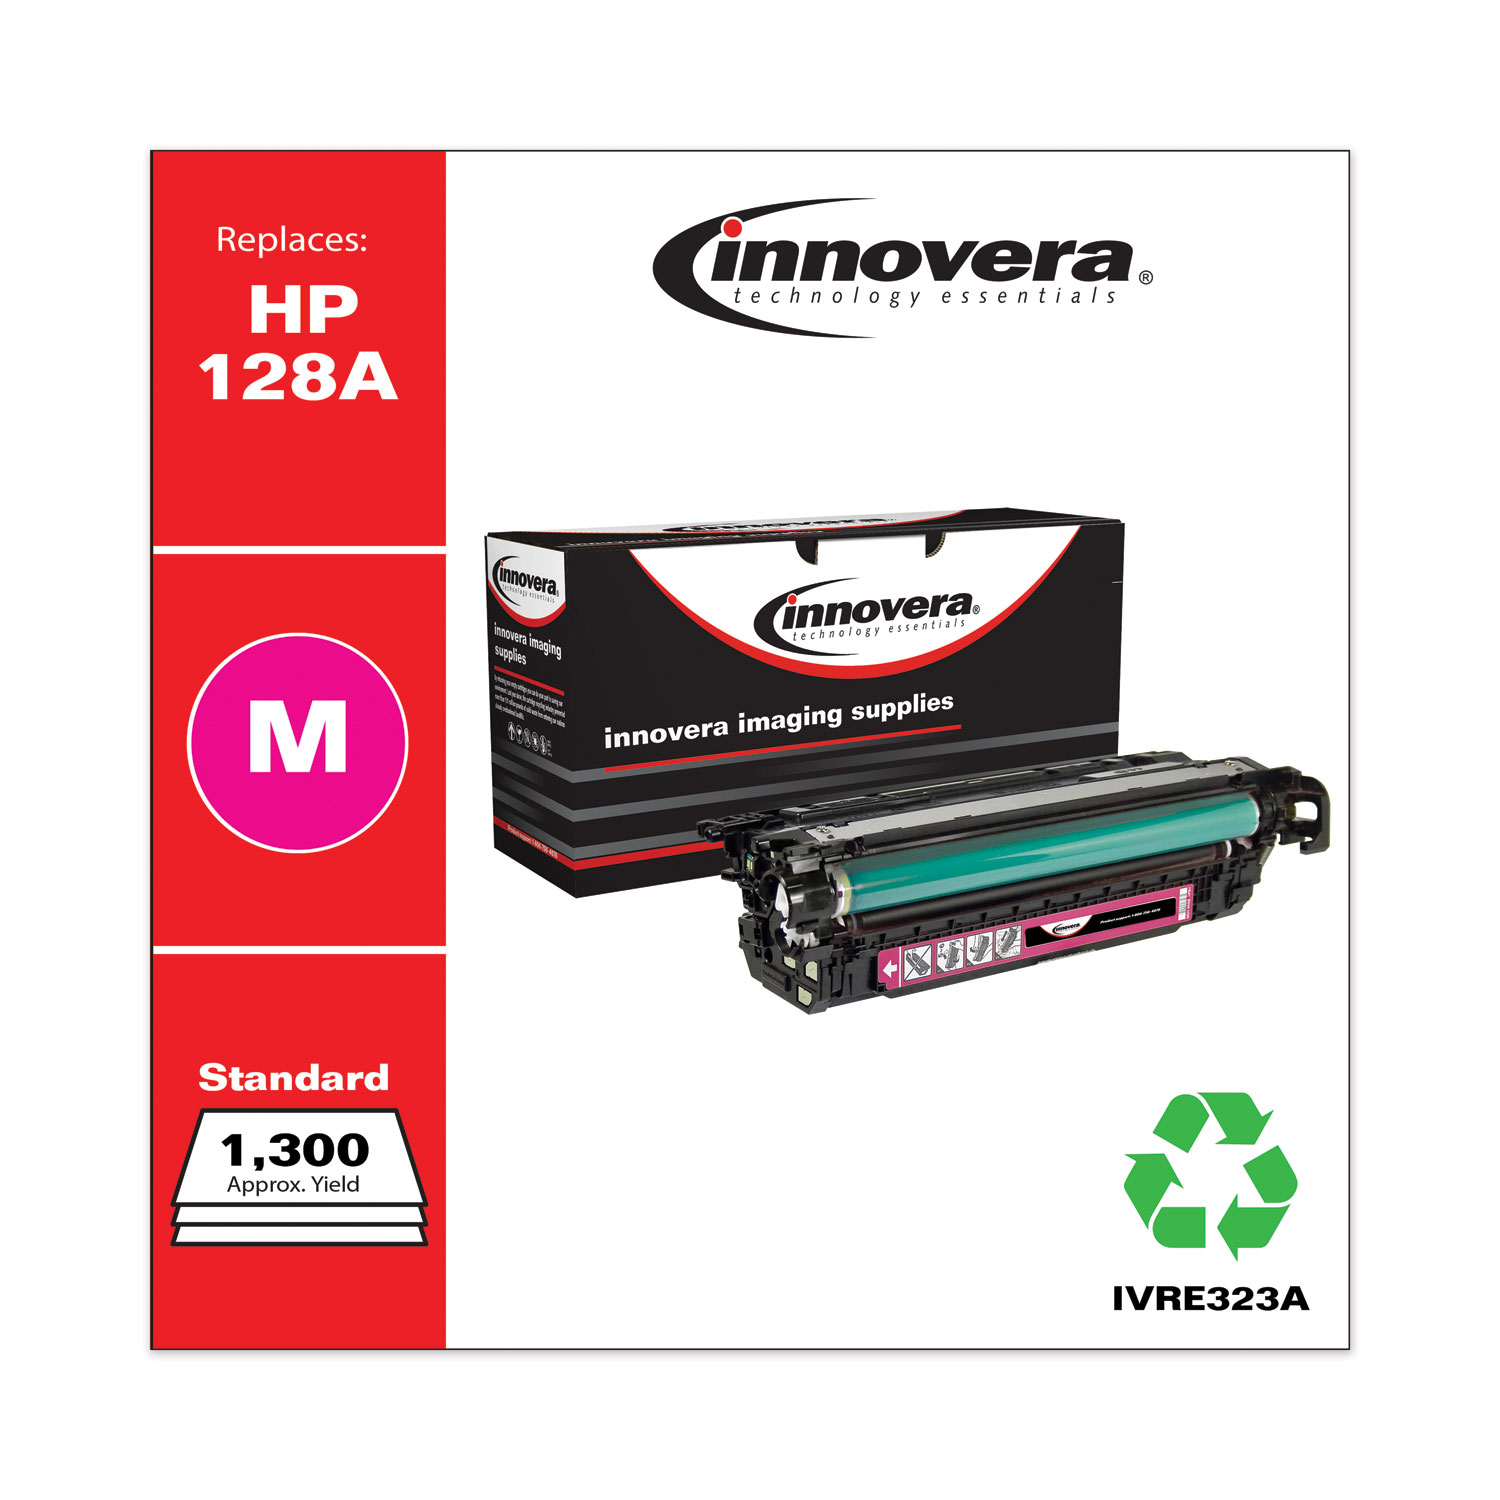 Remanufactured Magenta Toner, Replacement for HP 128A (CE323A), 1,300 Page-Yield IVRE323A